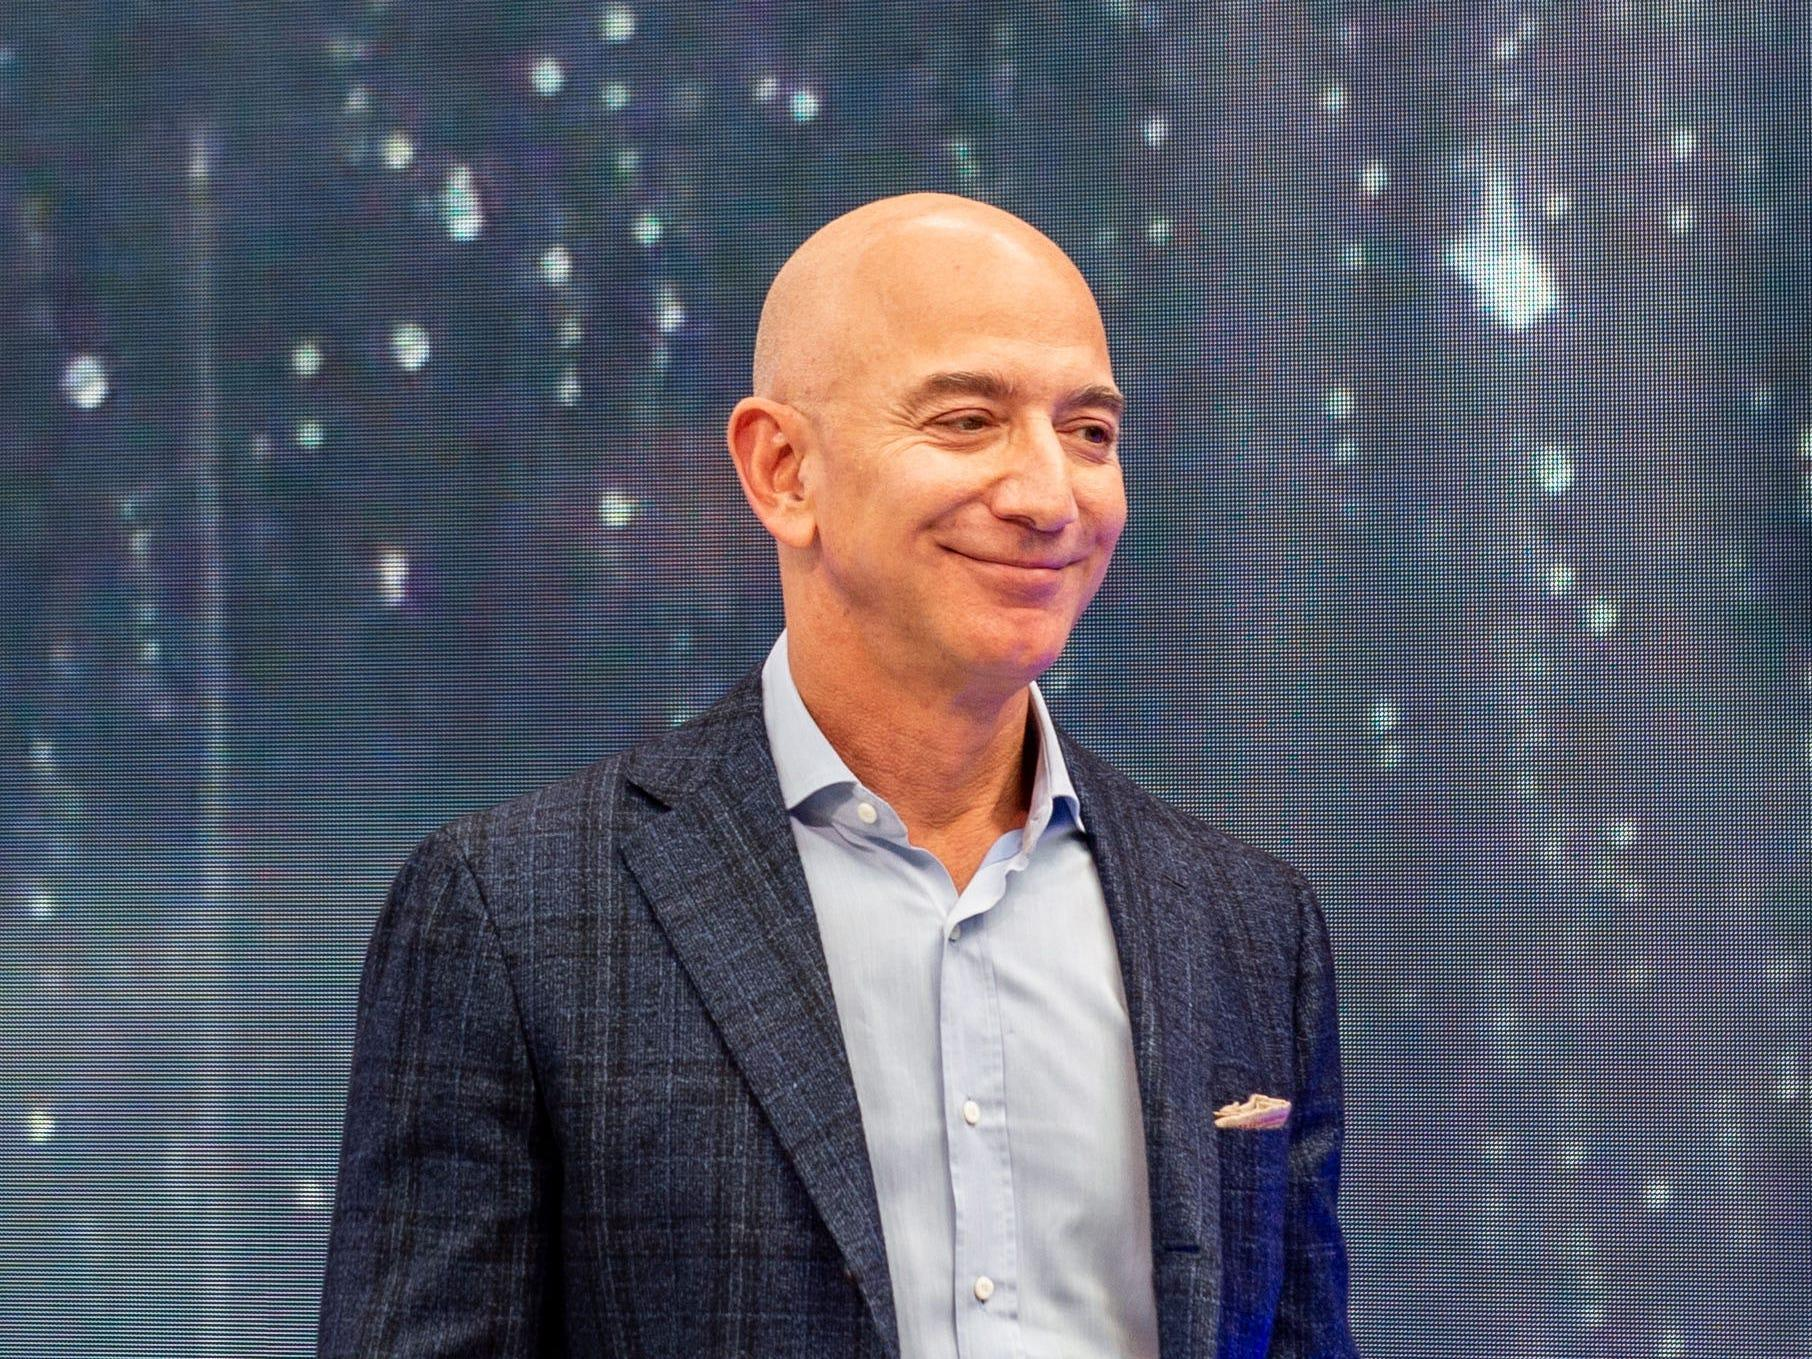 Jeff Bezos is the first person in history to be worth more than $200 billion. Here's how the world's richest man makes and spends his fortune. - RapidAPI